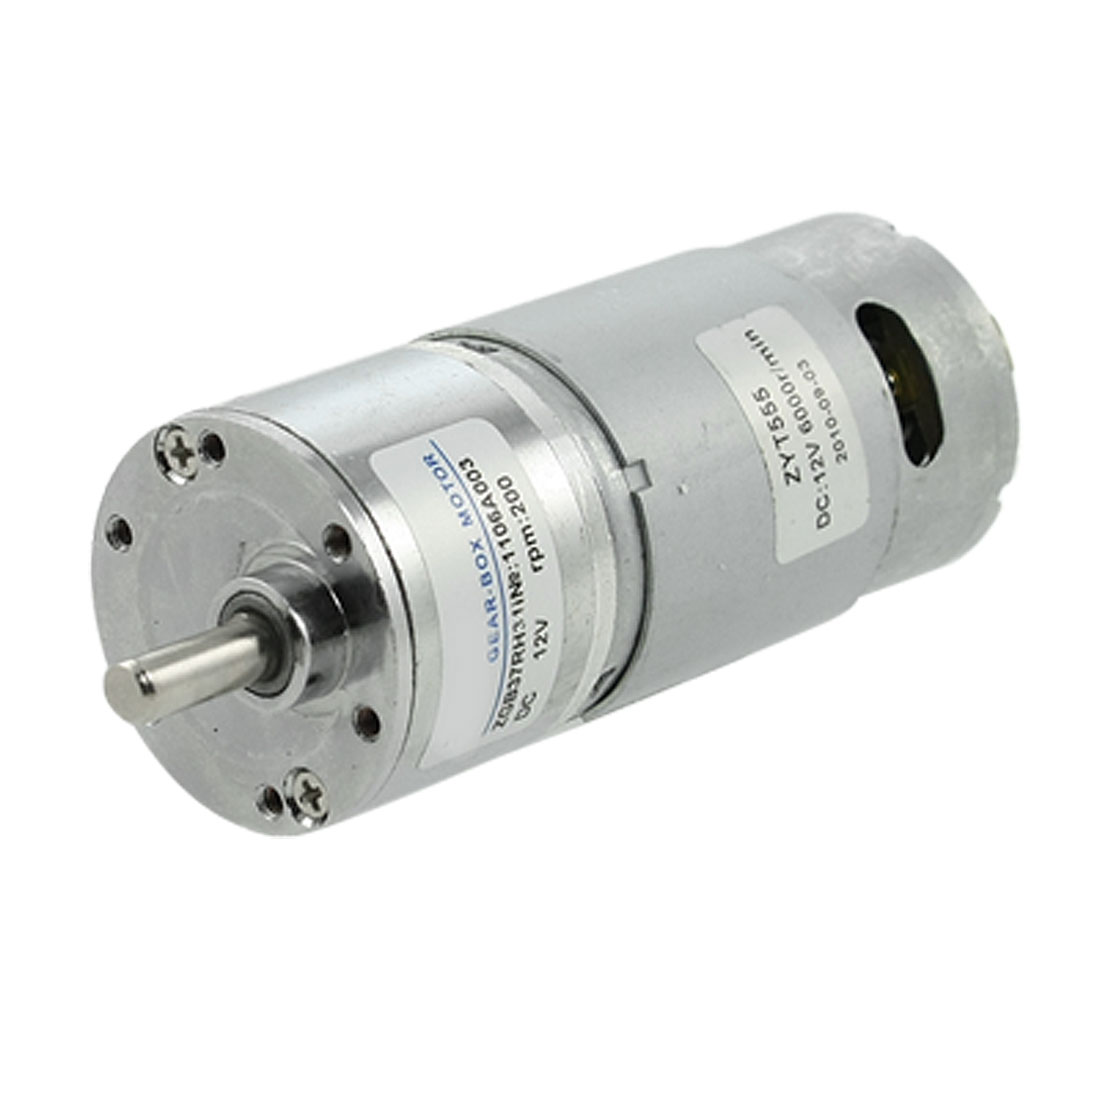 200RPM Output Speed 37mm Diameter 12V 2.1A DC Geared Motor